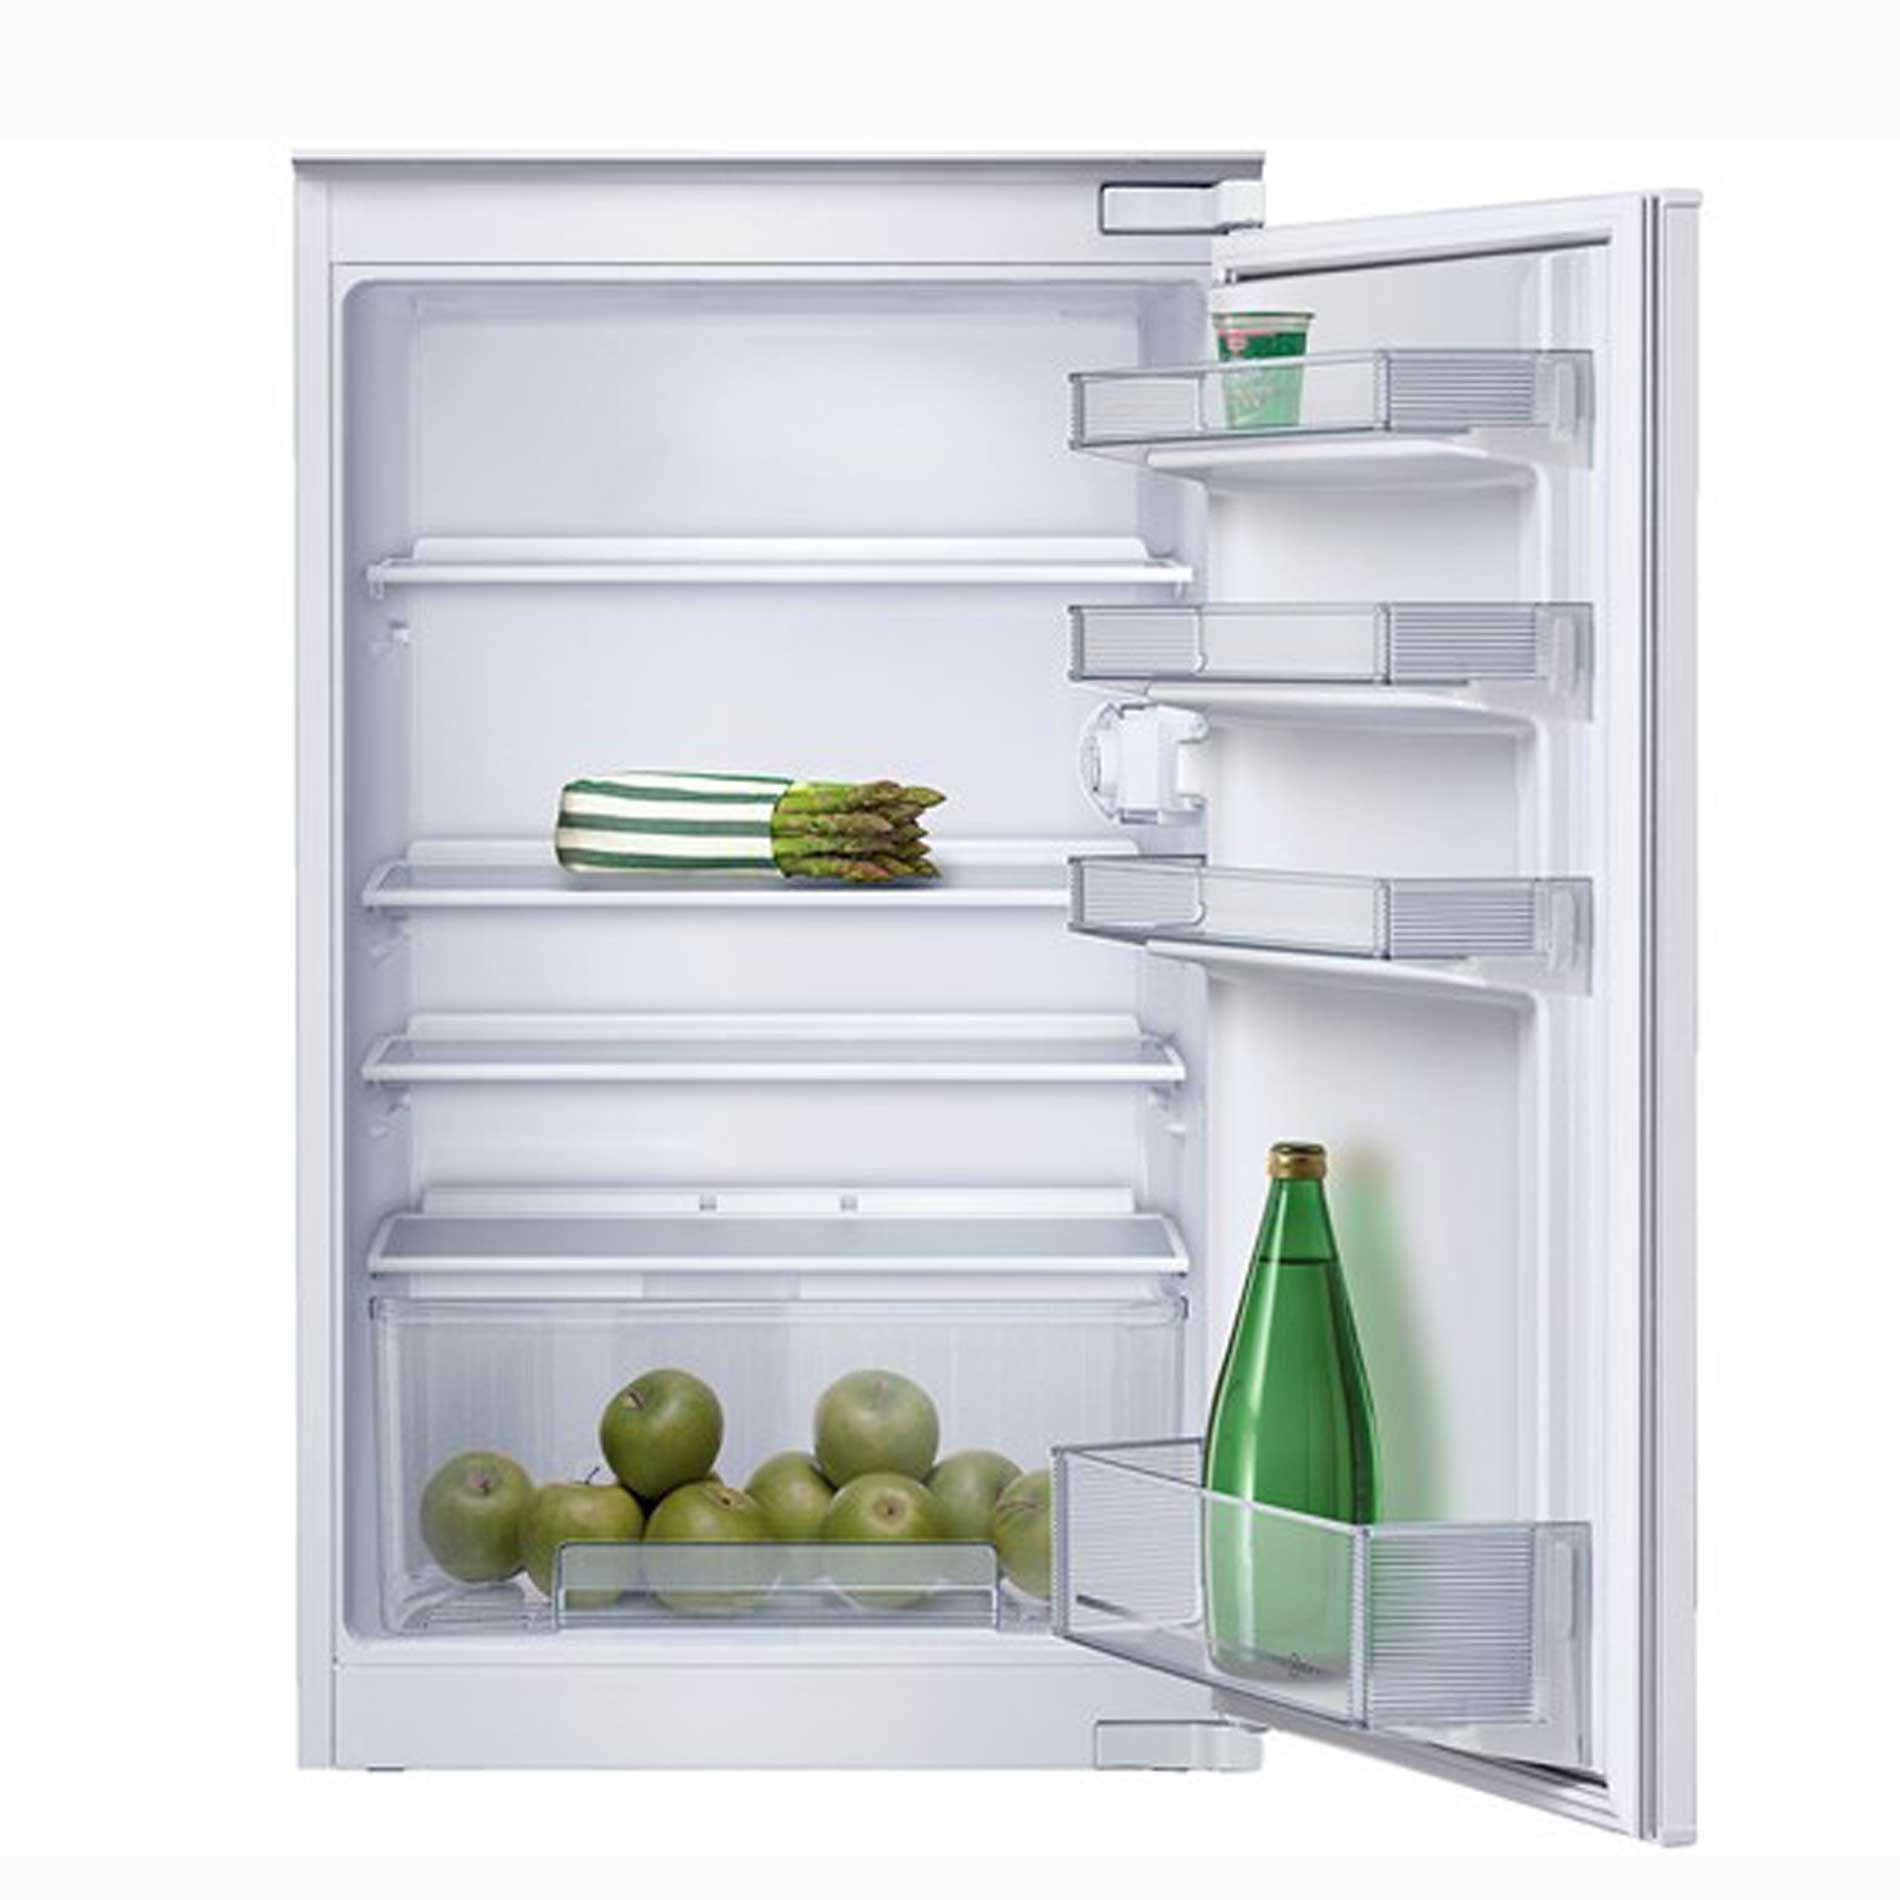 Picture of K1514X7GB Integrated Fridge